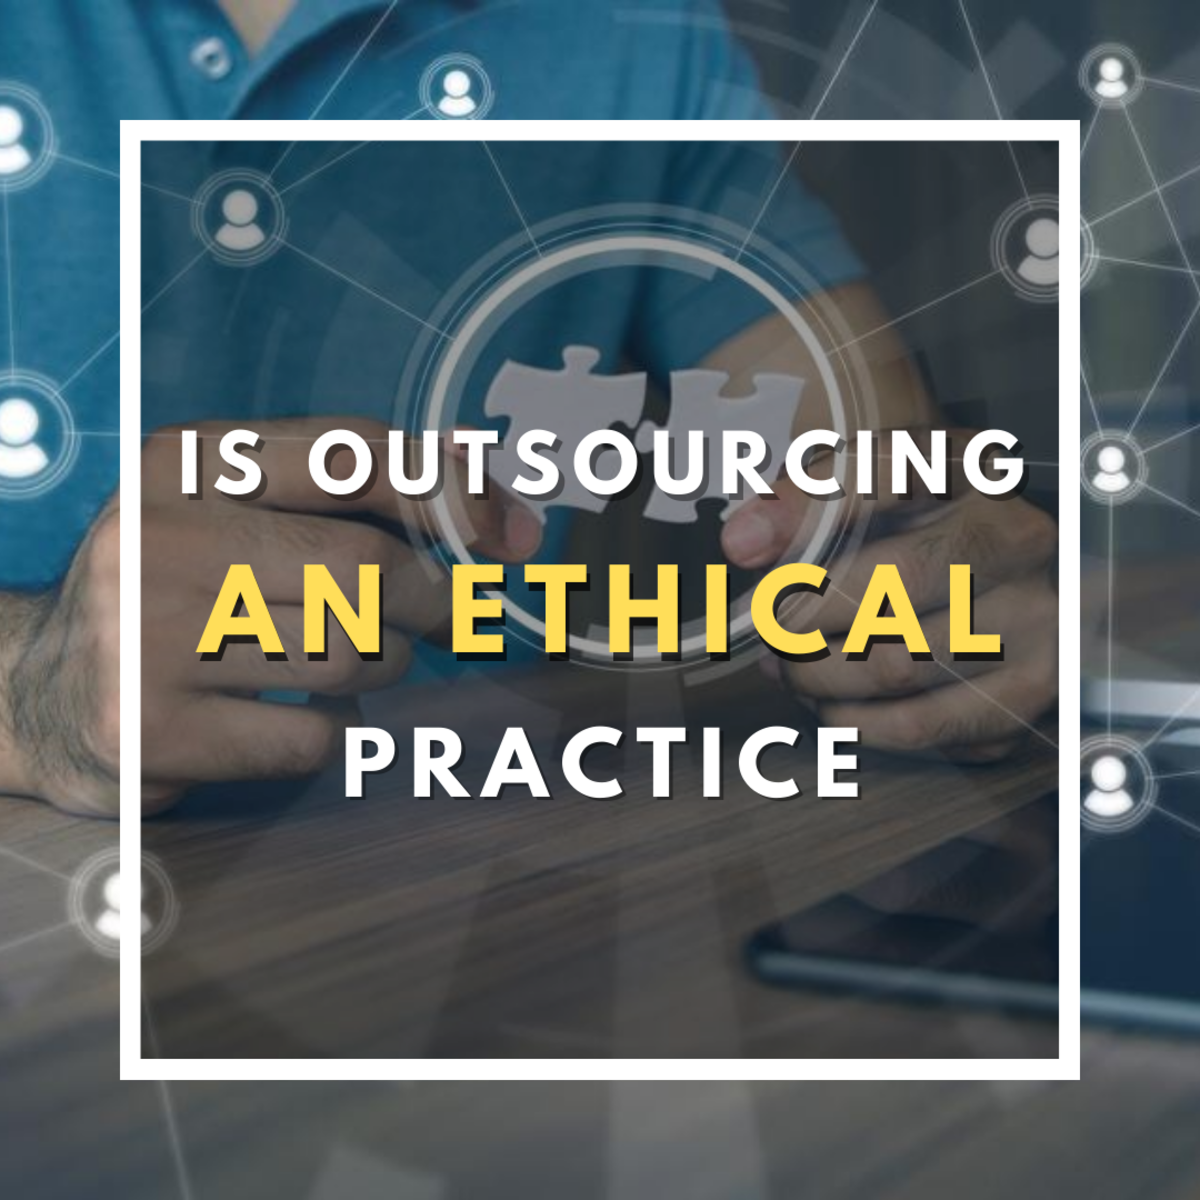 is-outsourcing-an-ethical-practice-an-essay